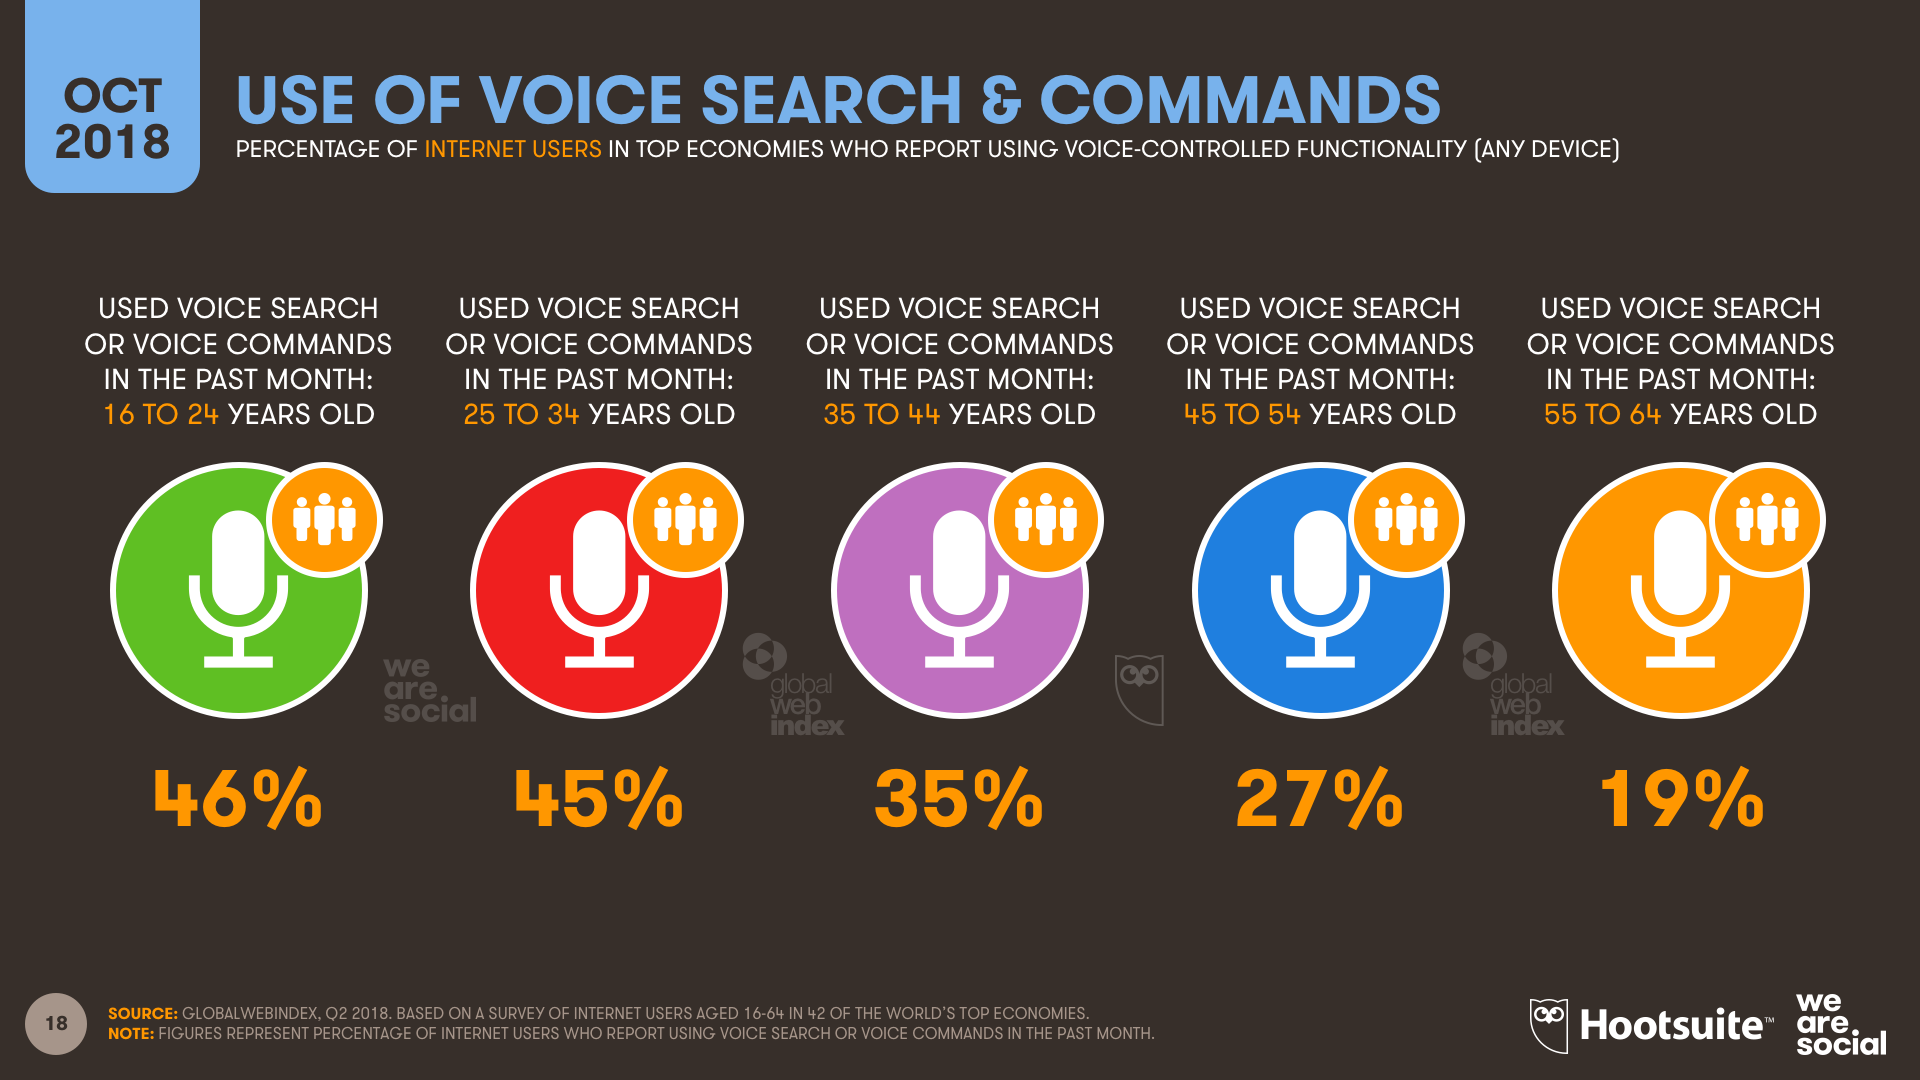 Digital Statshot Use of Voice by Age Group